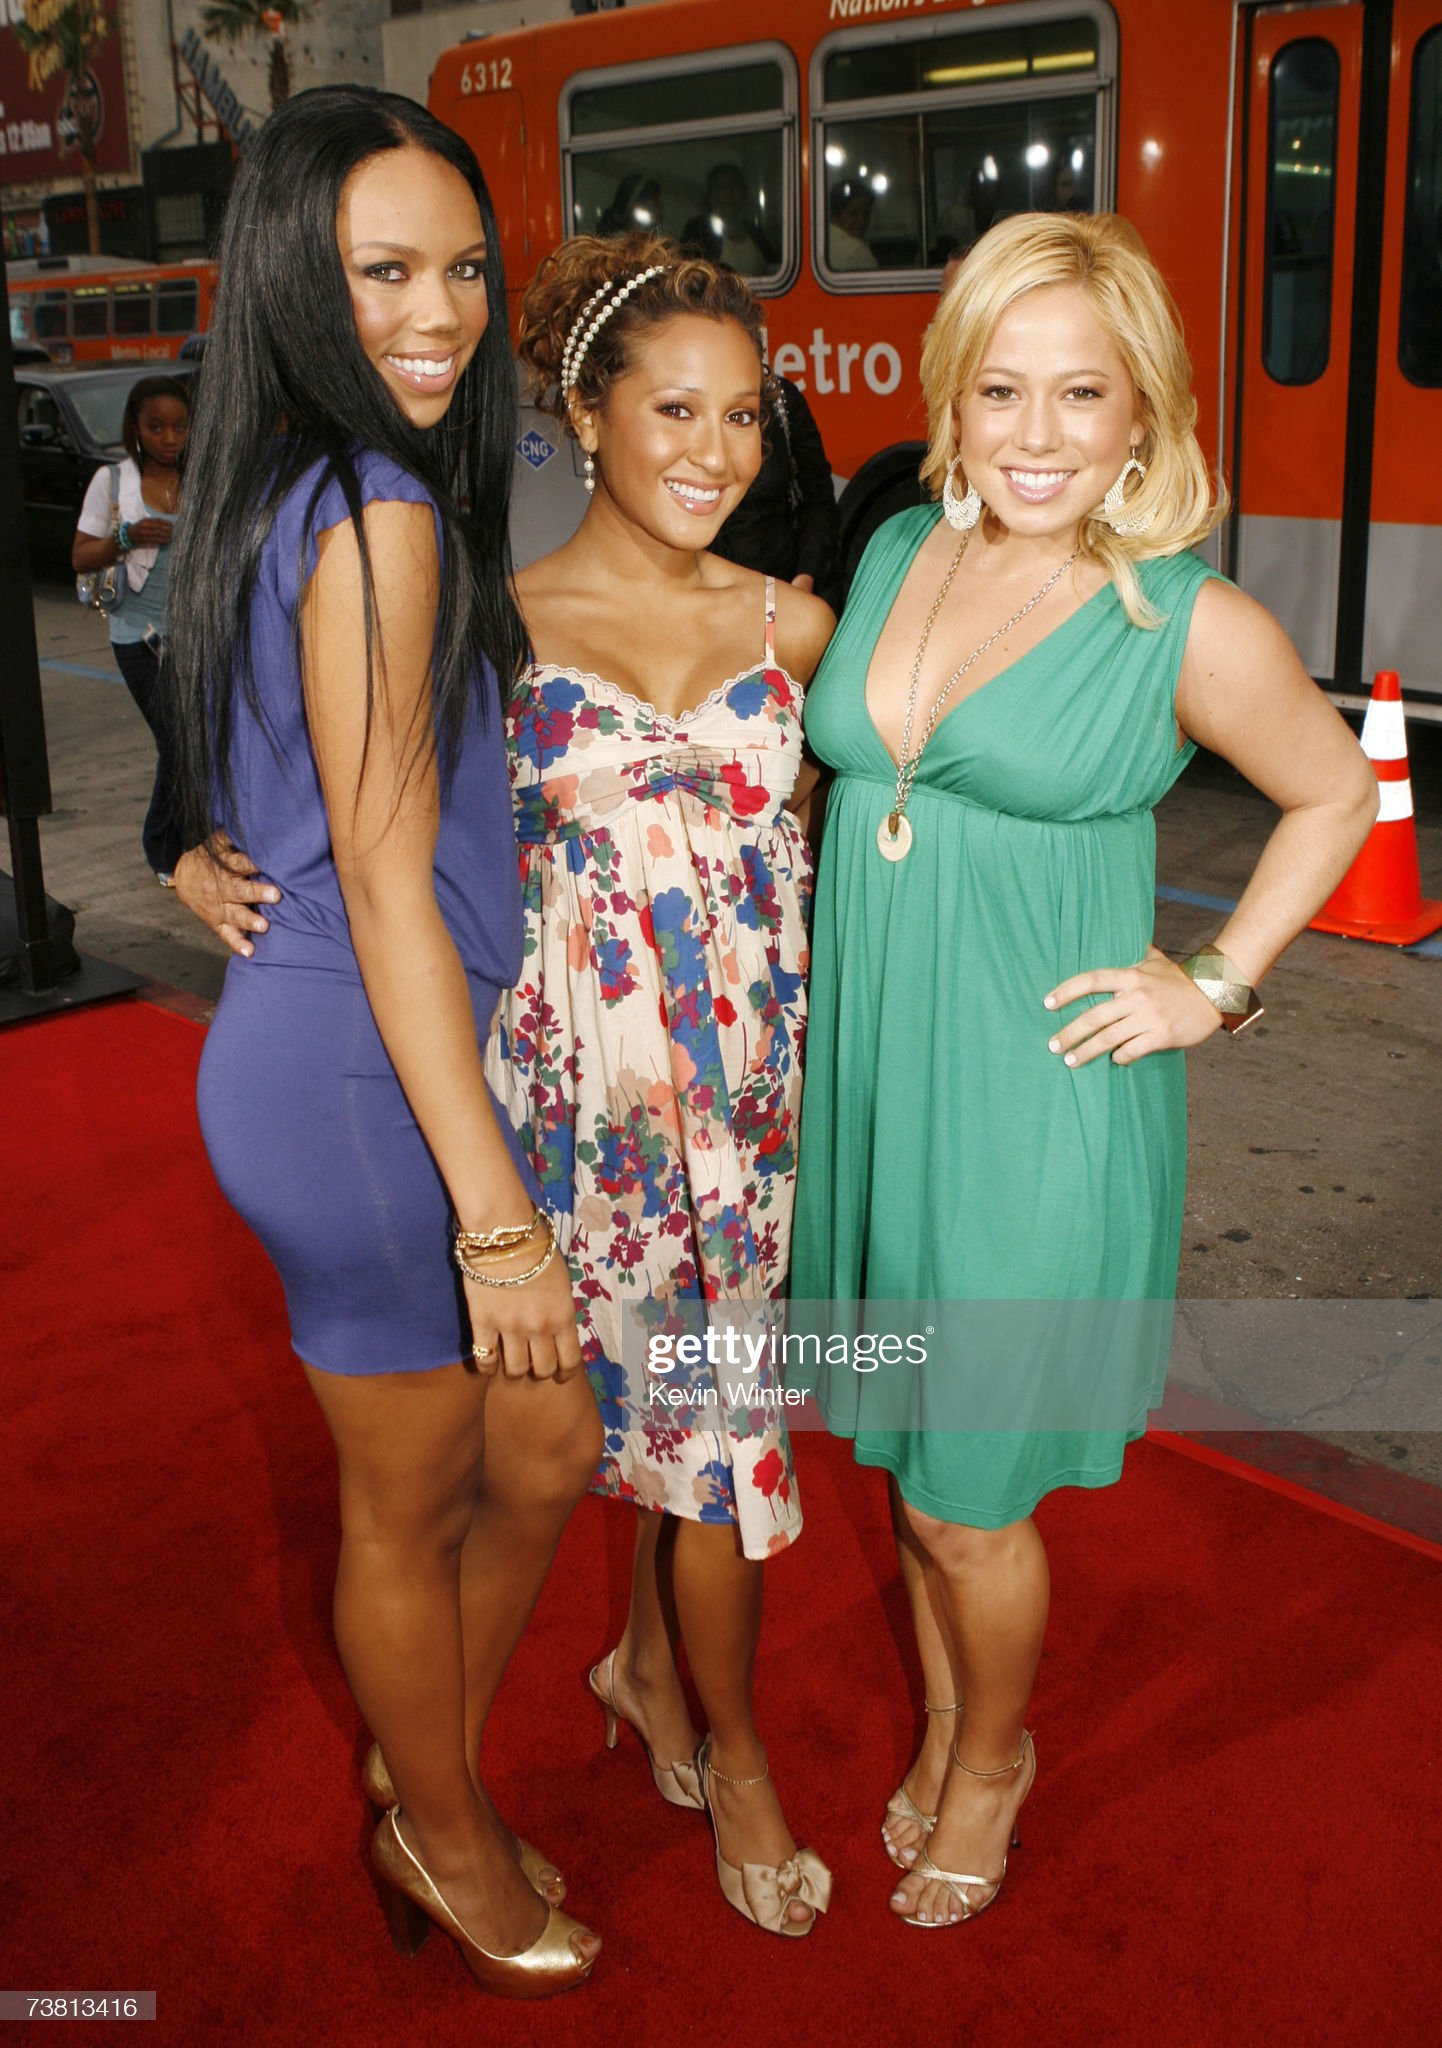 ¿Cuánto mide Adrienne Bailon? - Real height The-cheetah-girls-with-kiely-williams-adrienne-bailon-and-sabrina-picture-id73813416?s=2048x2048